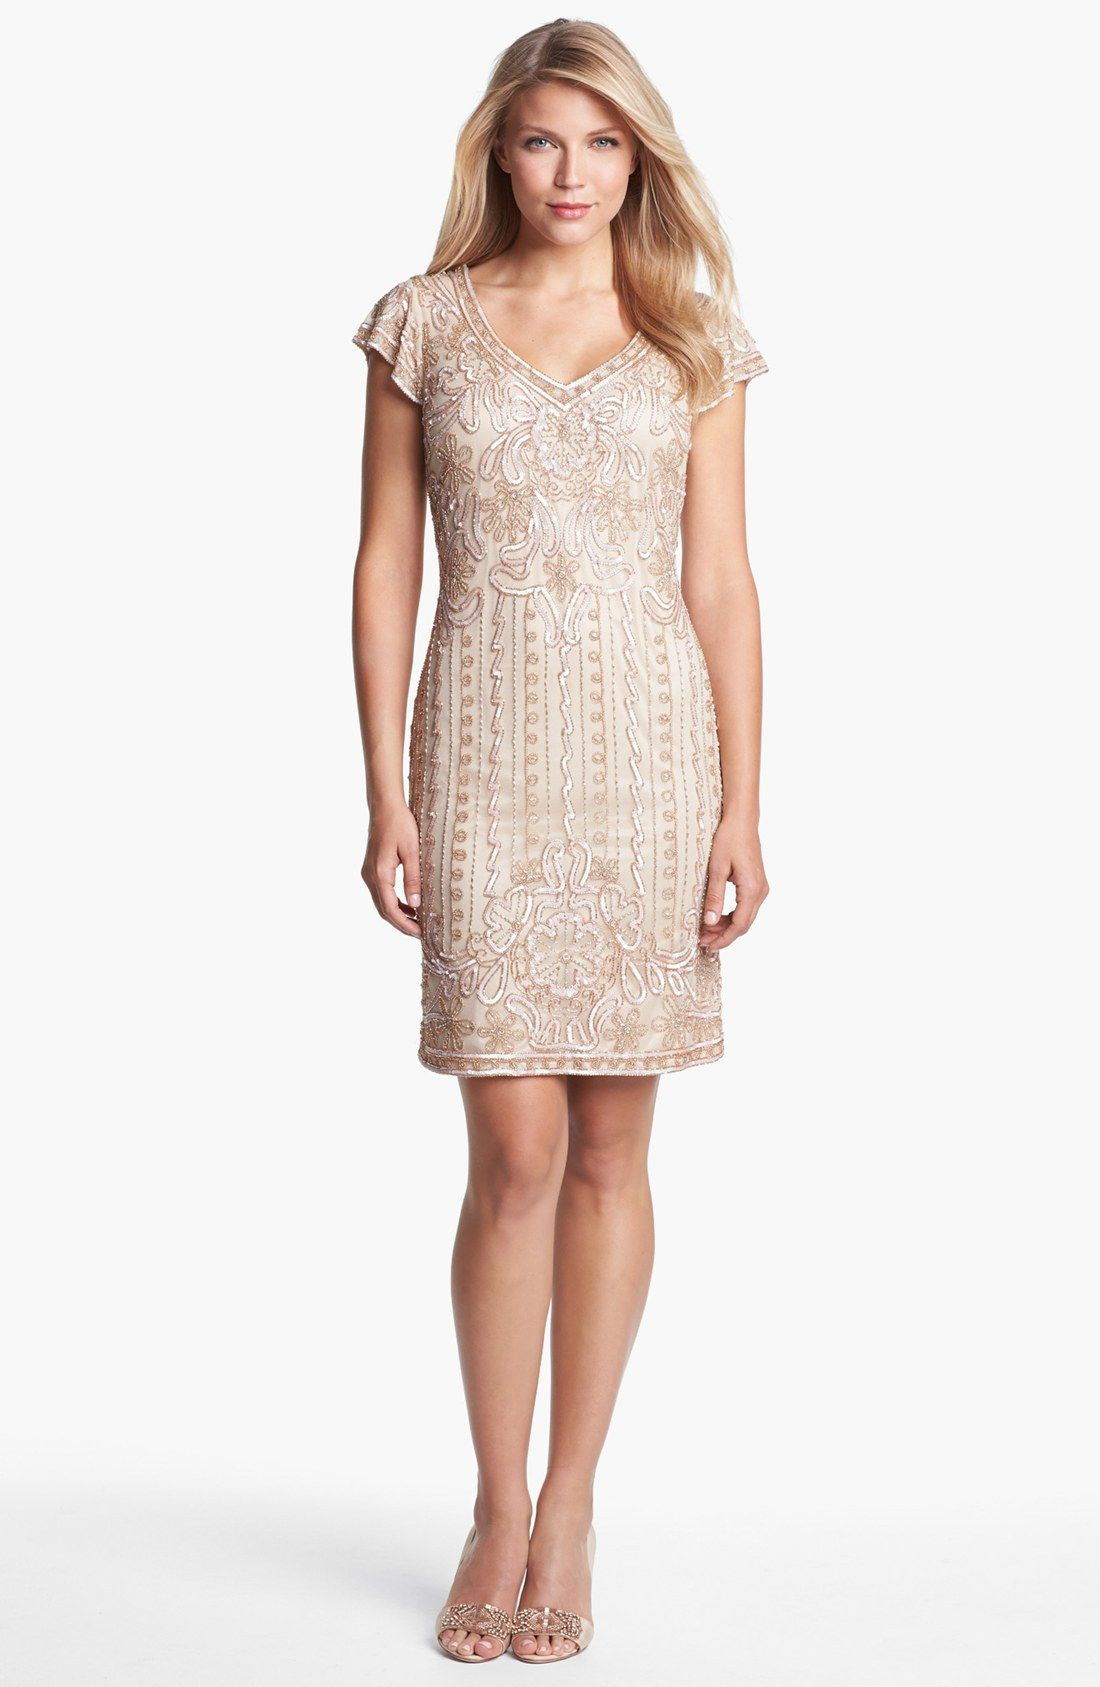 J kara embellished mesh sheath dress petite nordstrom for Nordstrom dresses for wedding